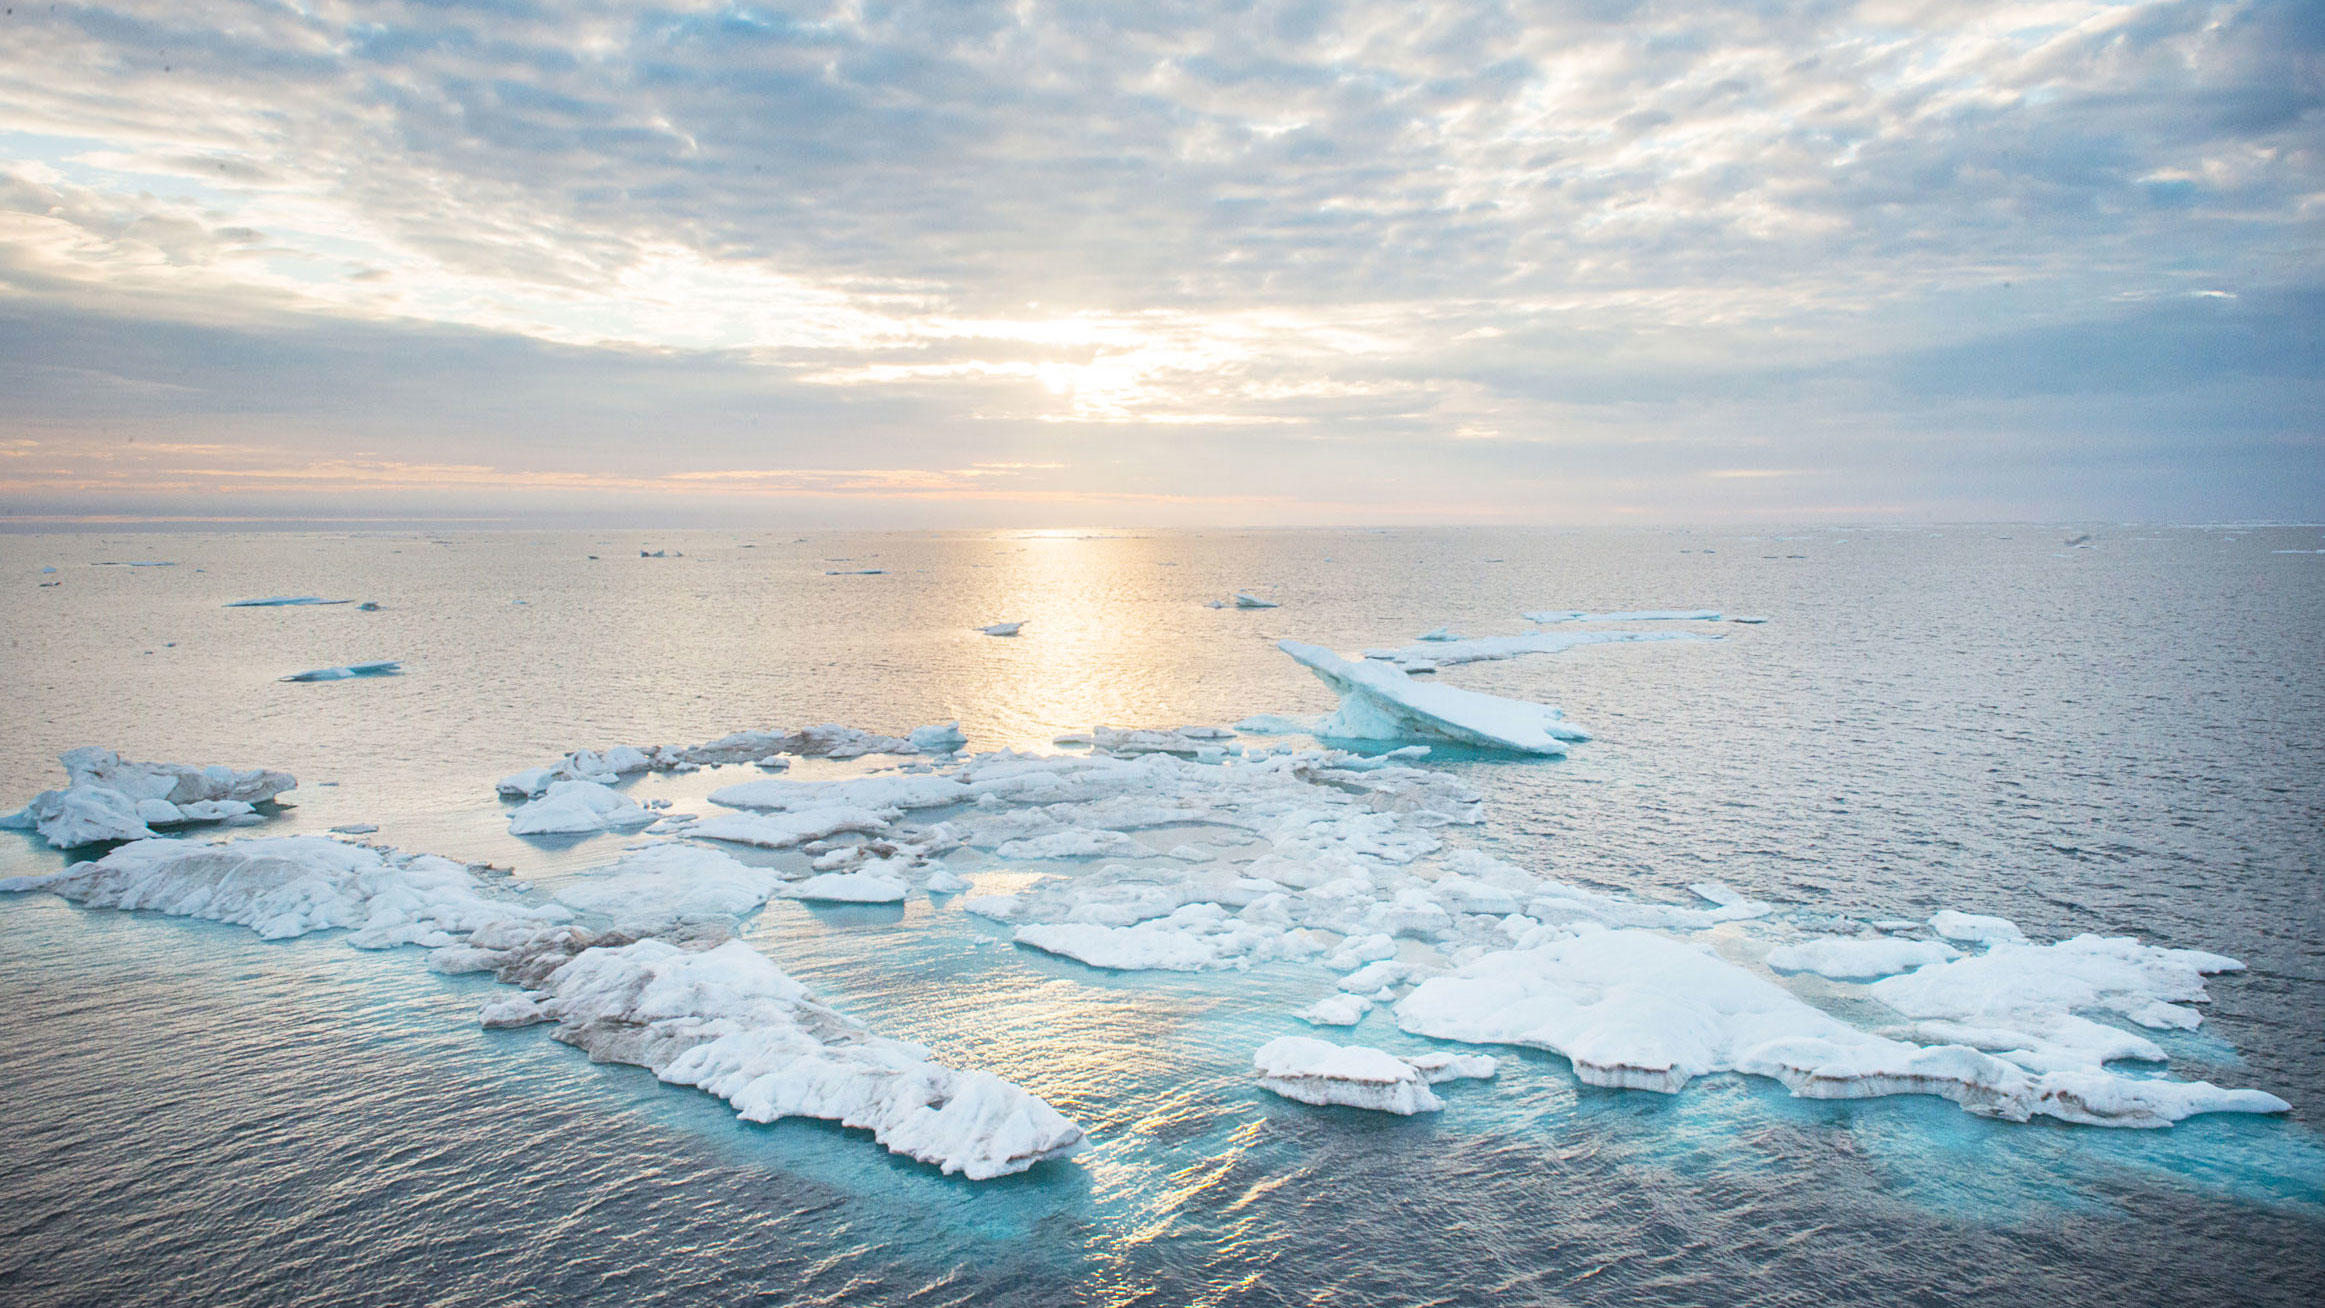 Melting sea ice in the Chukchi Sea, one of the areas included in the ban. Esther Horvath